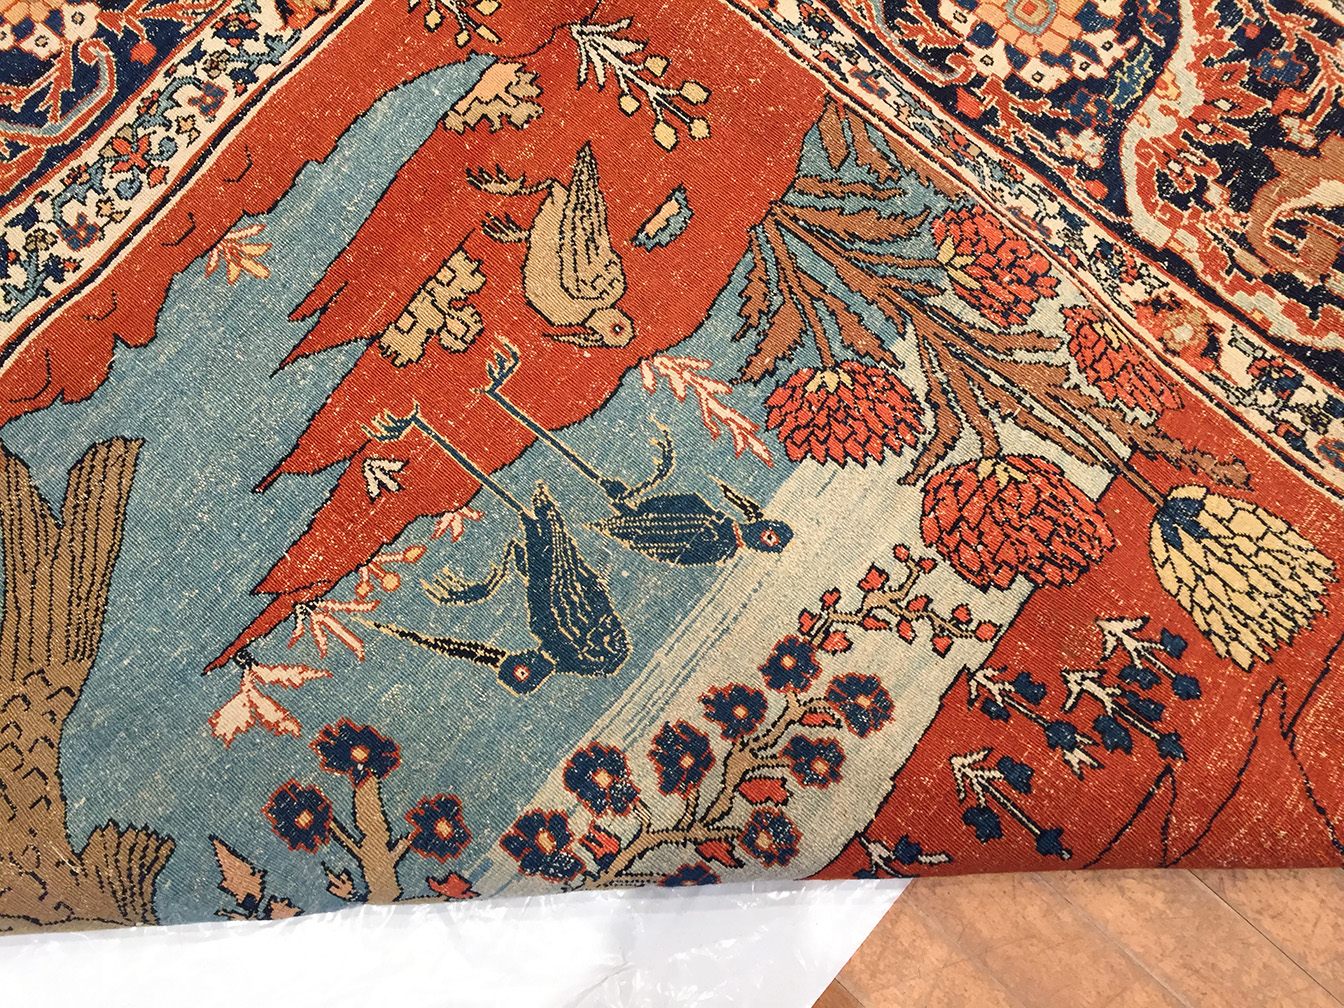 Antique tabriz Carpet - # 54178